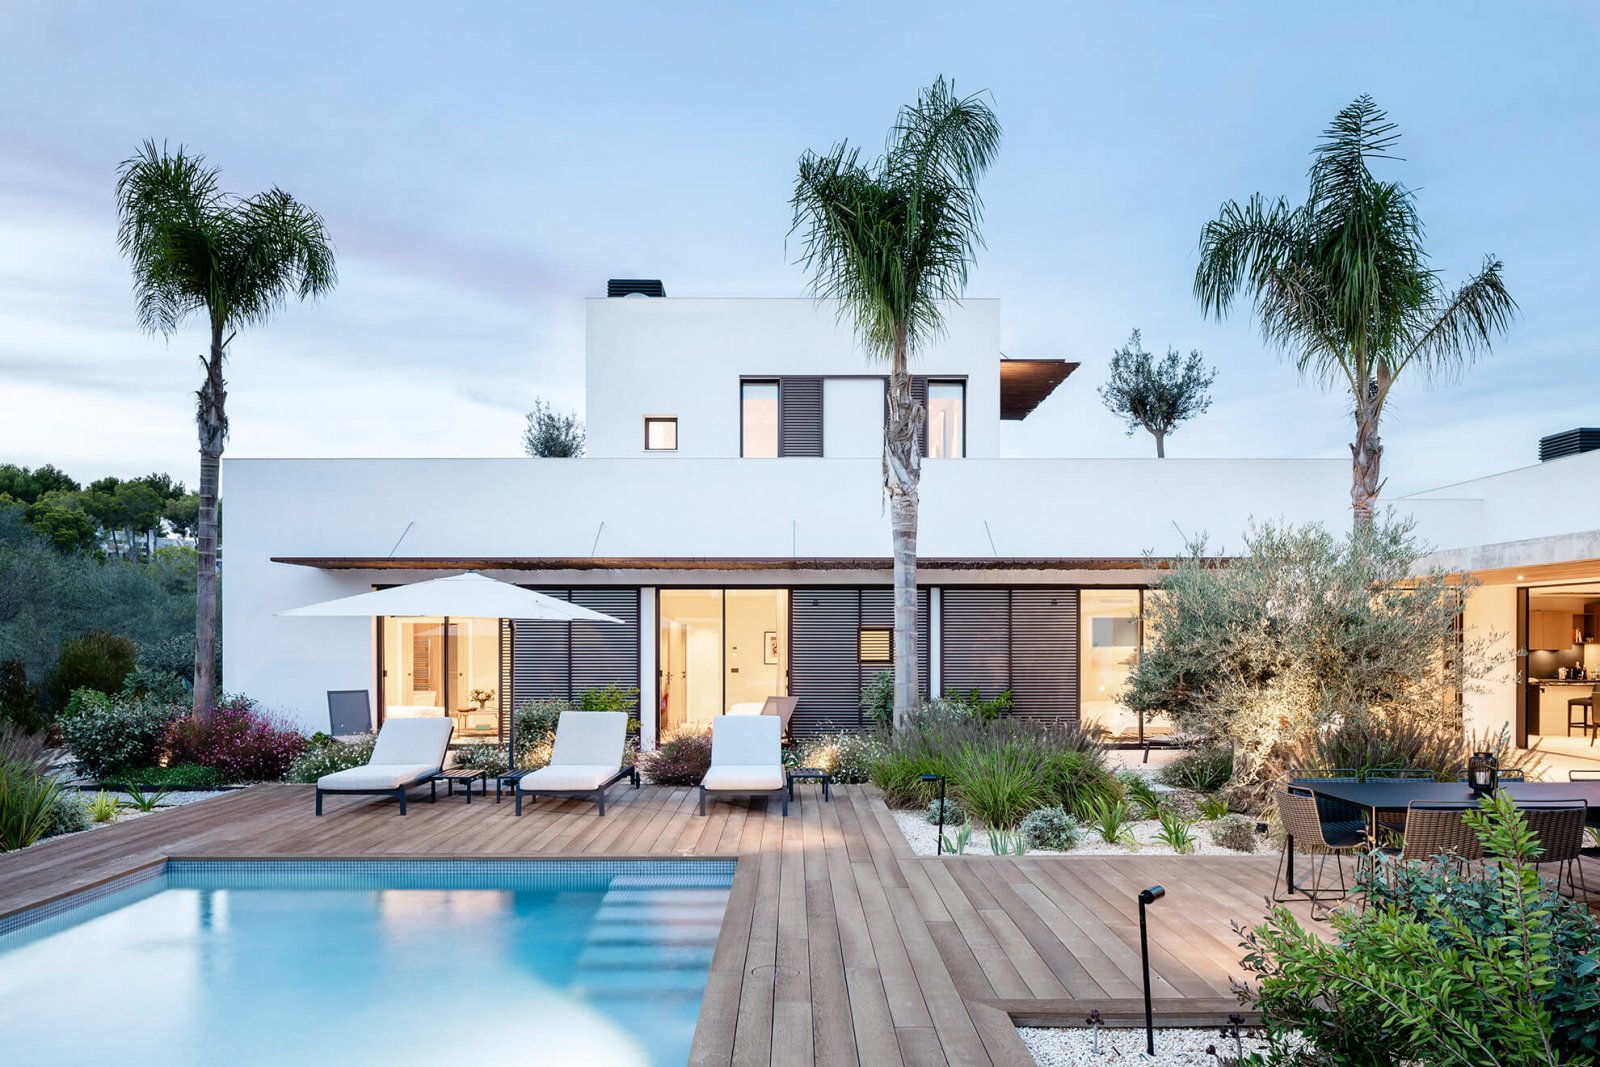 Another view of the garden with pool and interior facade of the Sol de Mallorca house